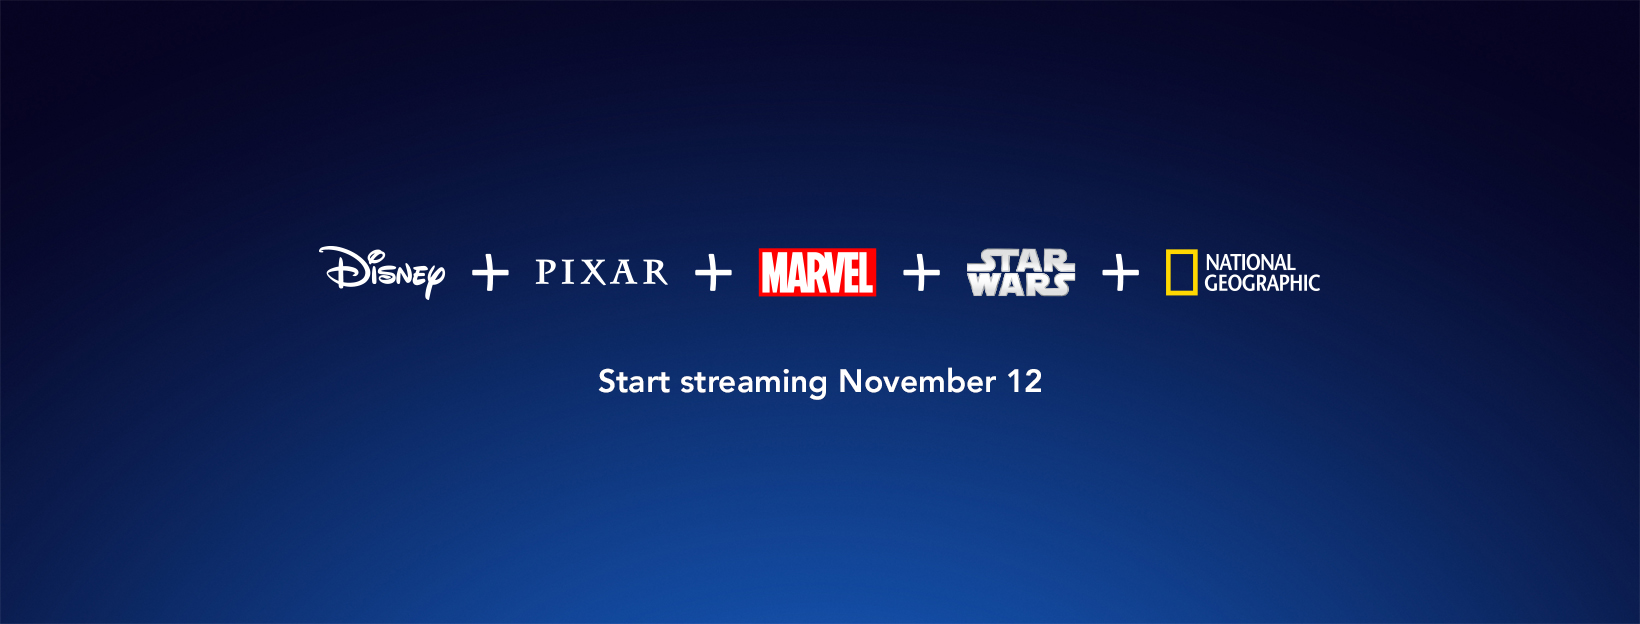 disney's upcoming streaming service - 1640×624